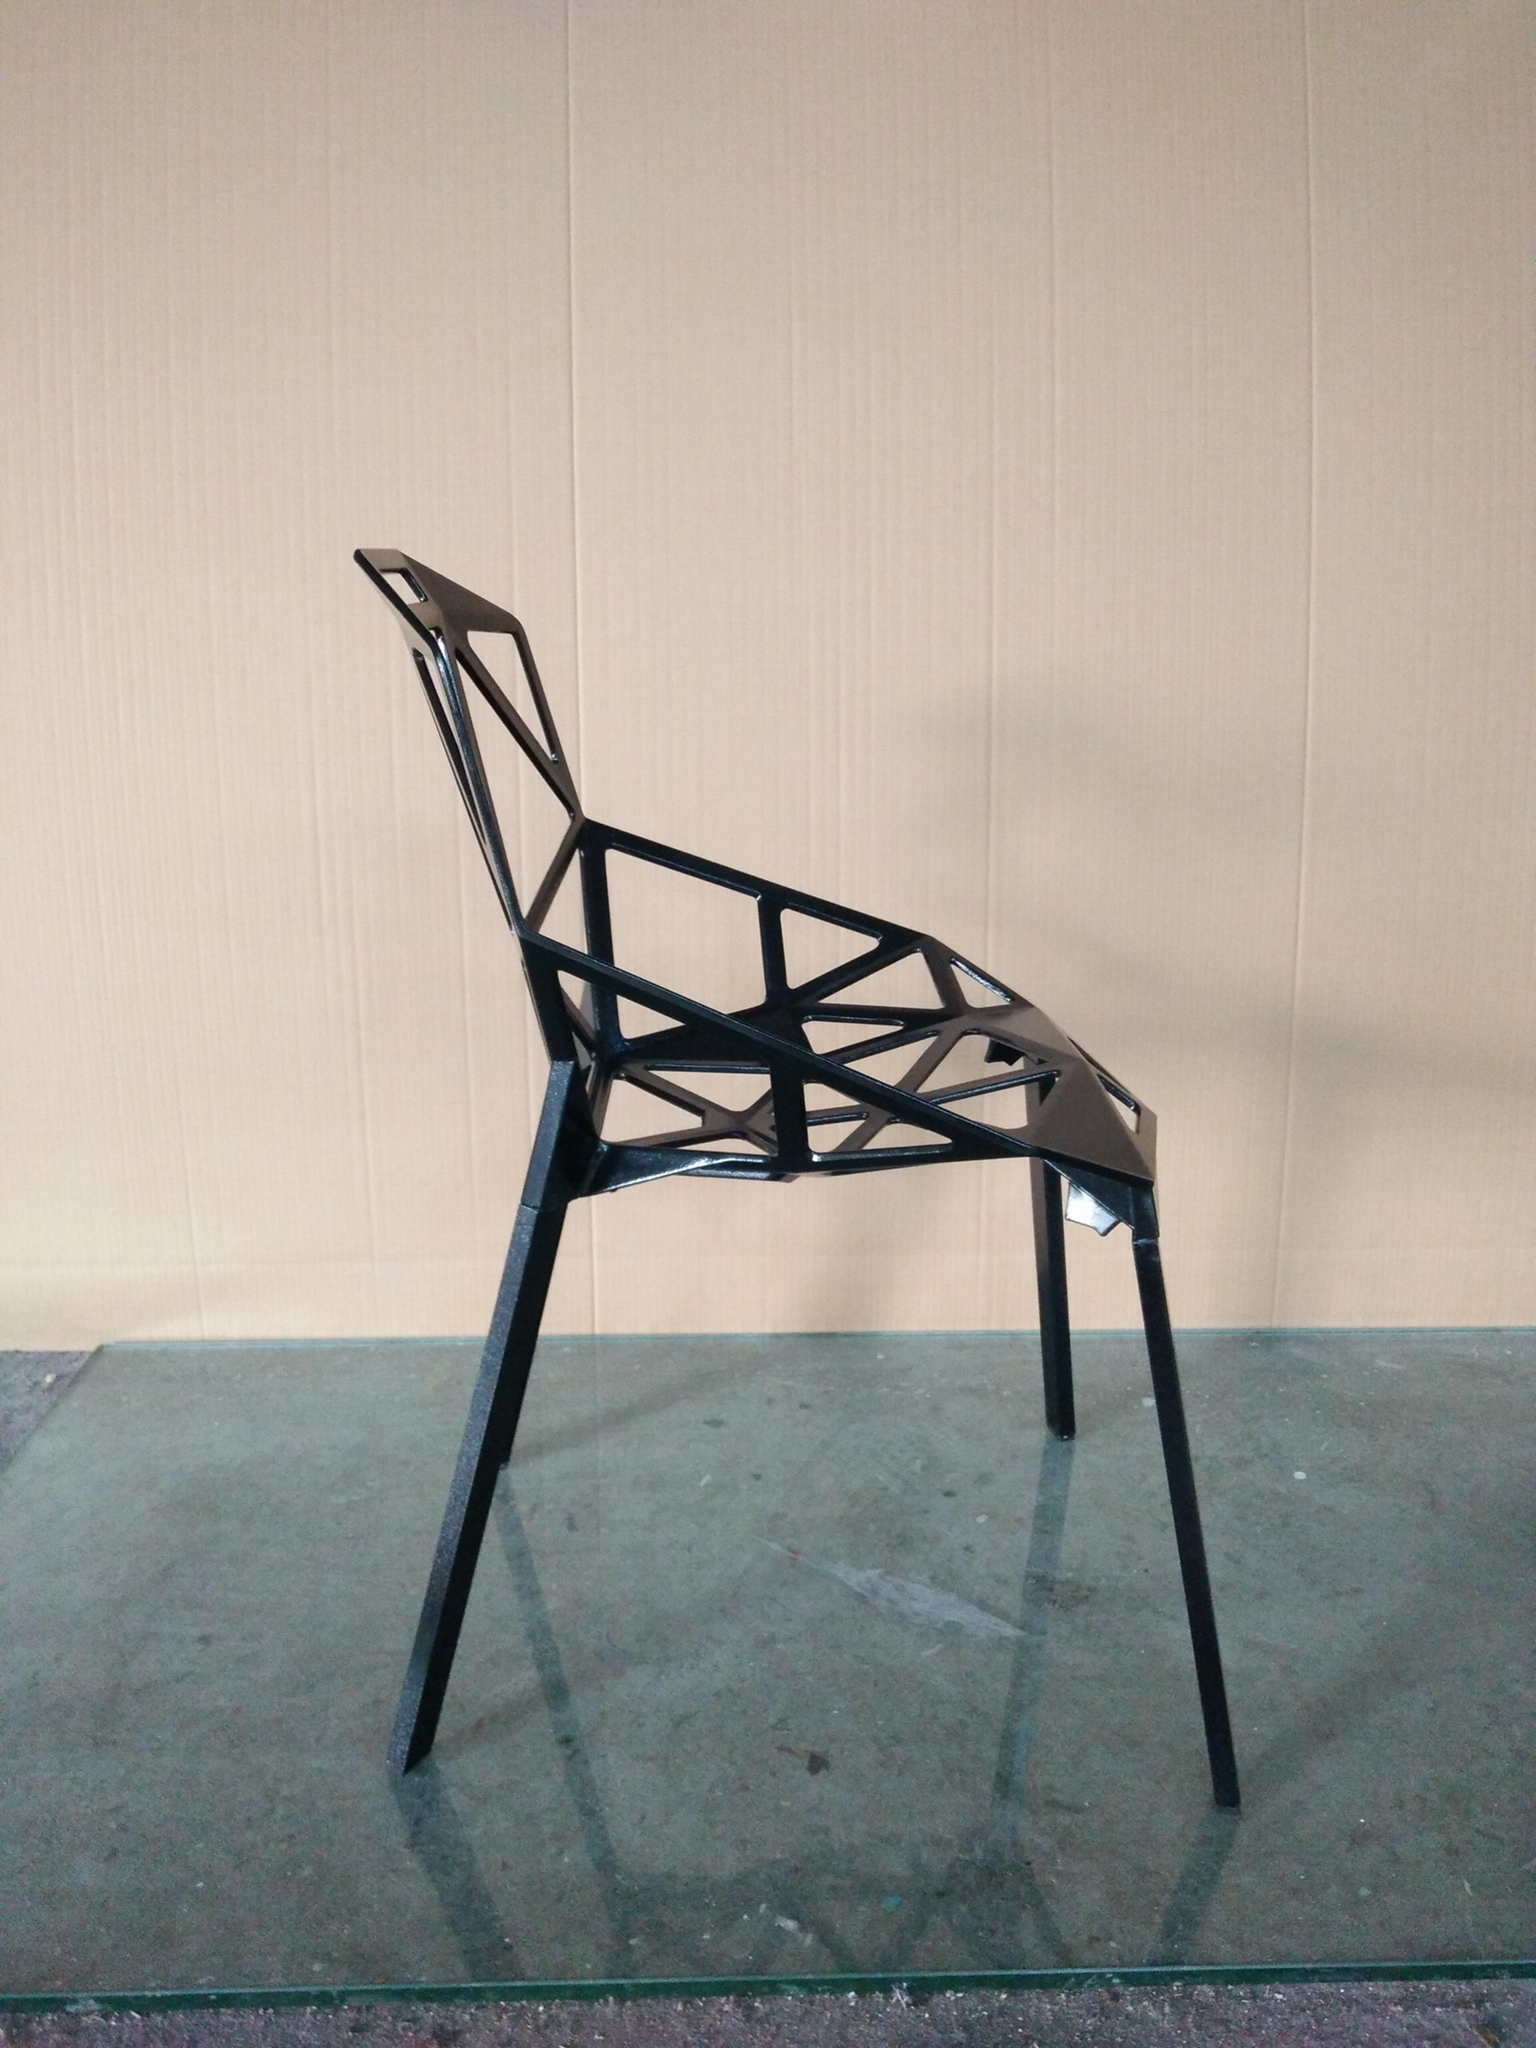 Polished Anodized Aluminum Stackable Konstantin Grcic Magis Chair One Chair 8